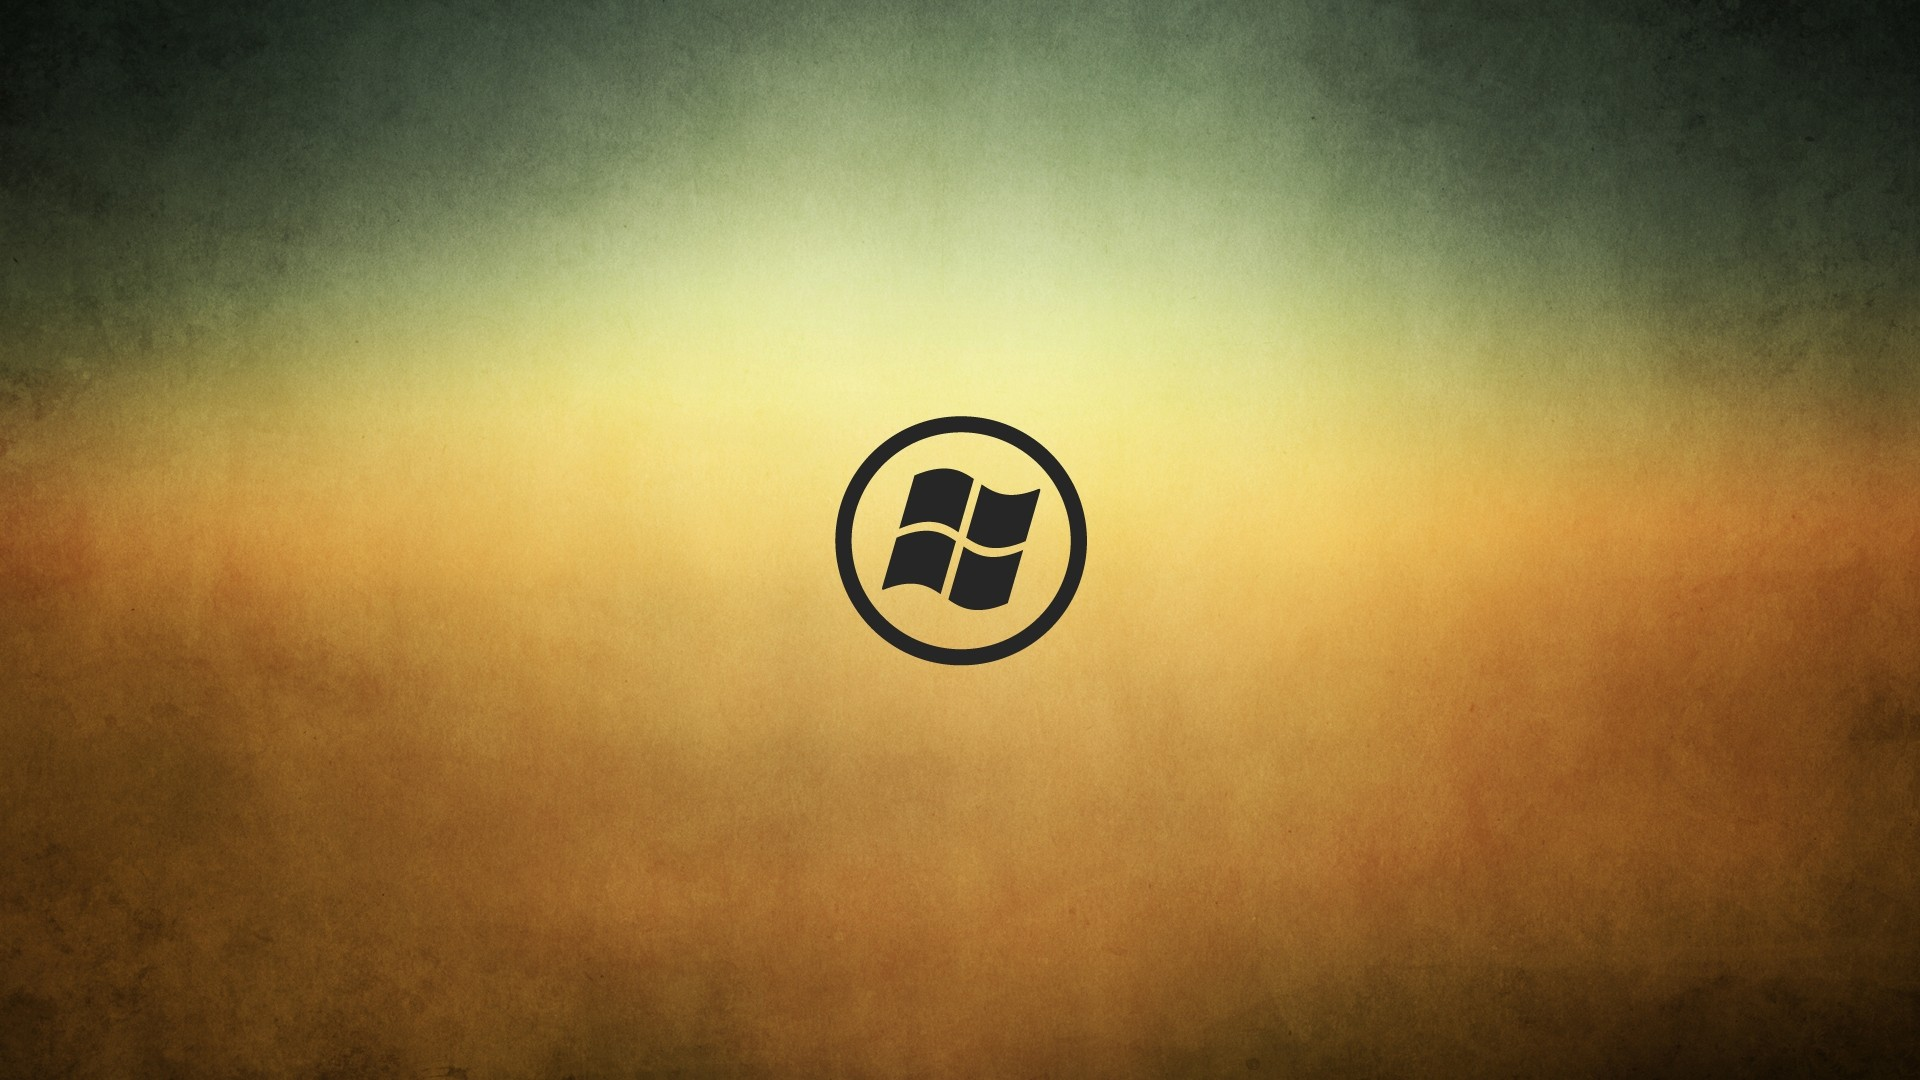 HD Windows 8 Wallpapers Group (94+)